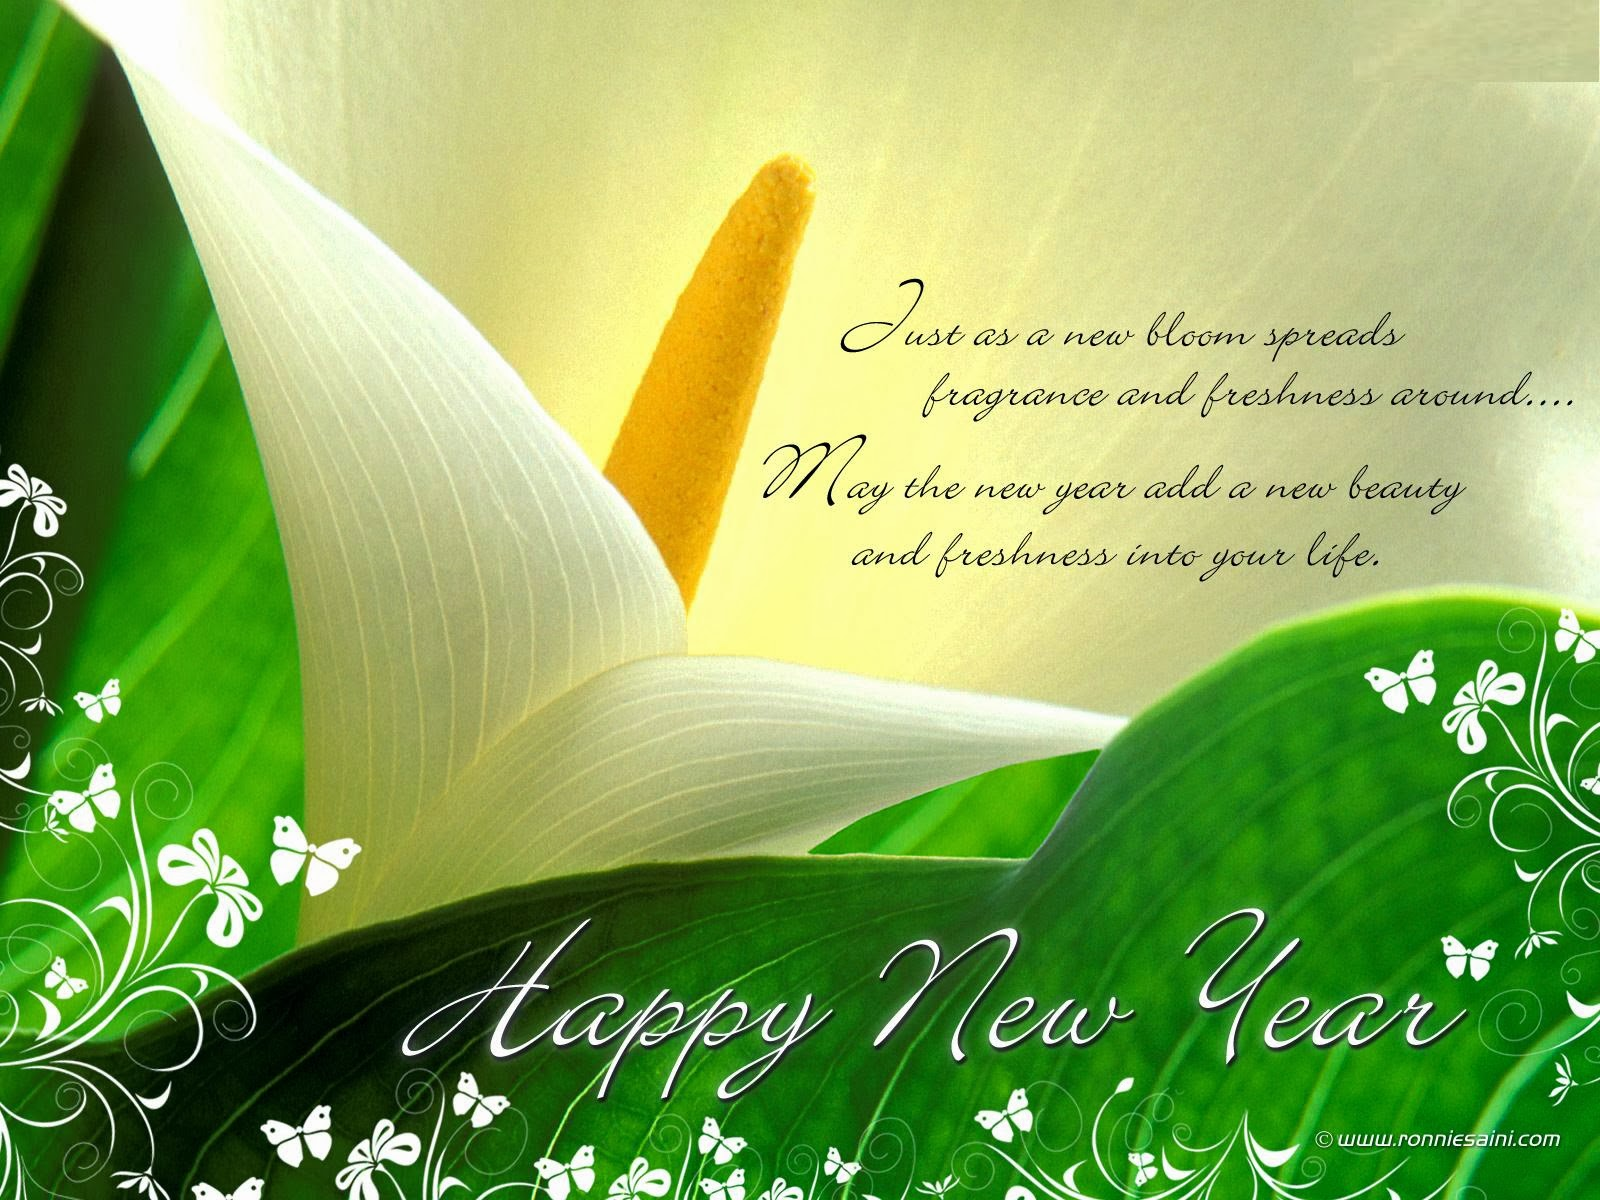 Top 10 Happy New Year 2014 Greeting Cards With Wishes Quotes New